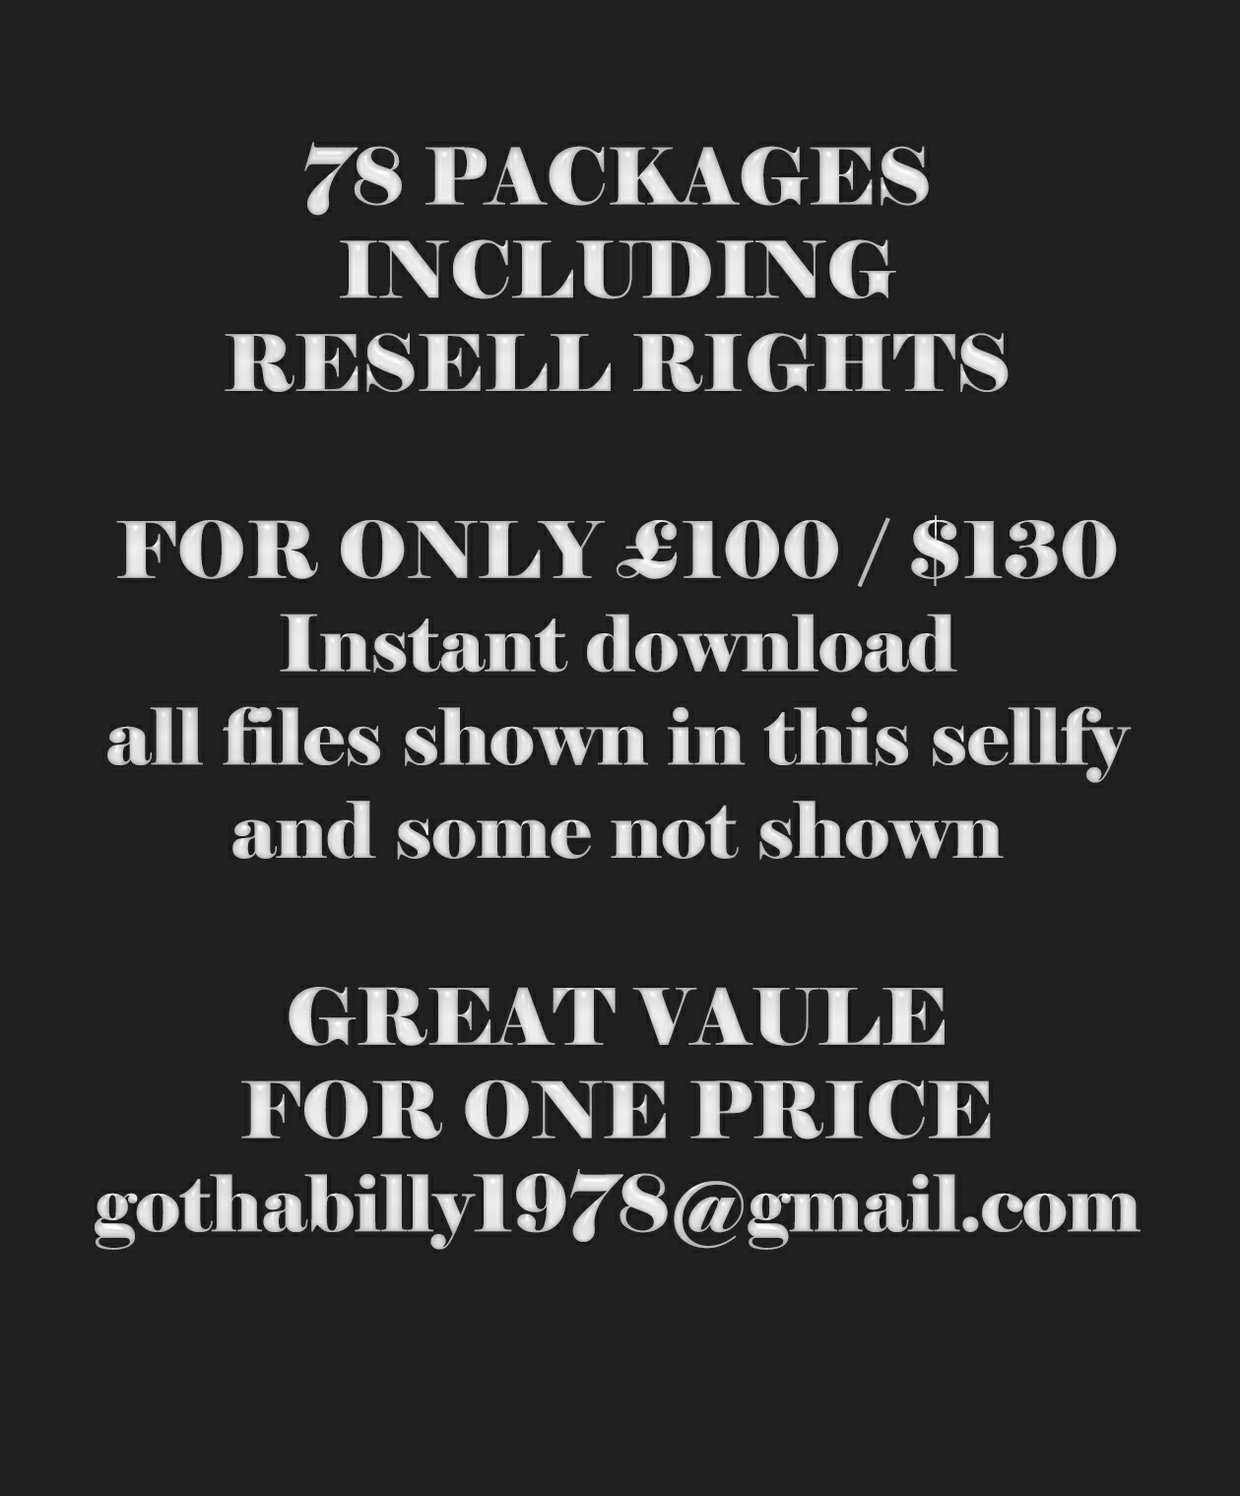 x77 PACKAGES - INCLUDING RESELLS RIGHTS UPDATED